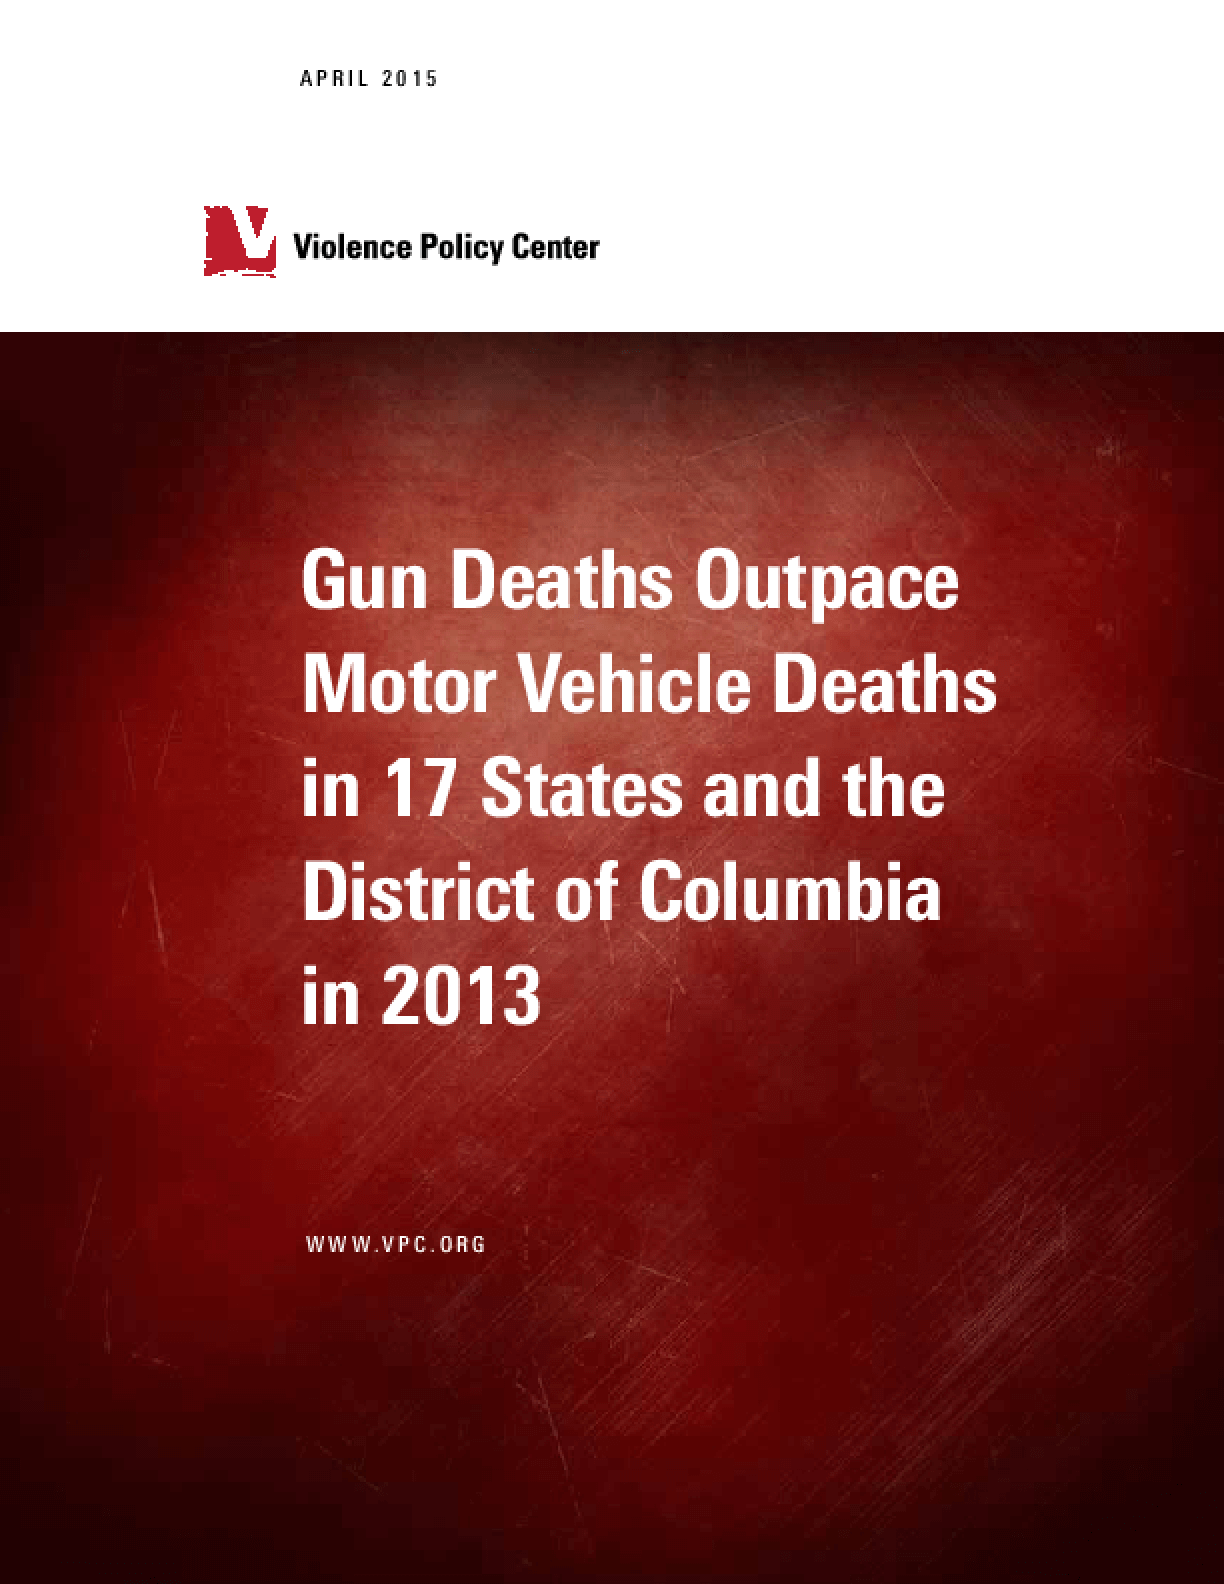 Gun Deaths Outpace Motor Vehicle Deaths in 17 States and the District of Columbia in 2013